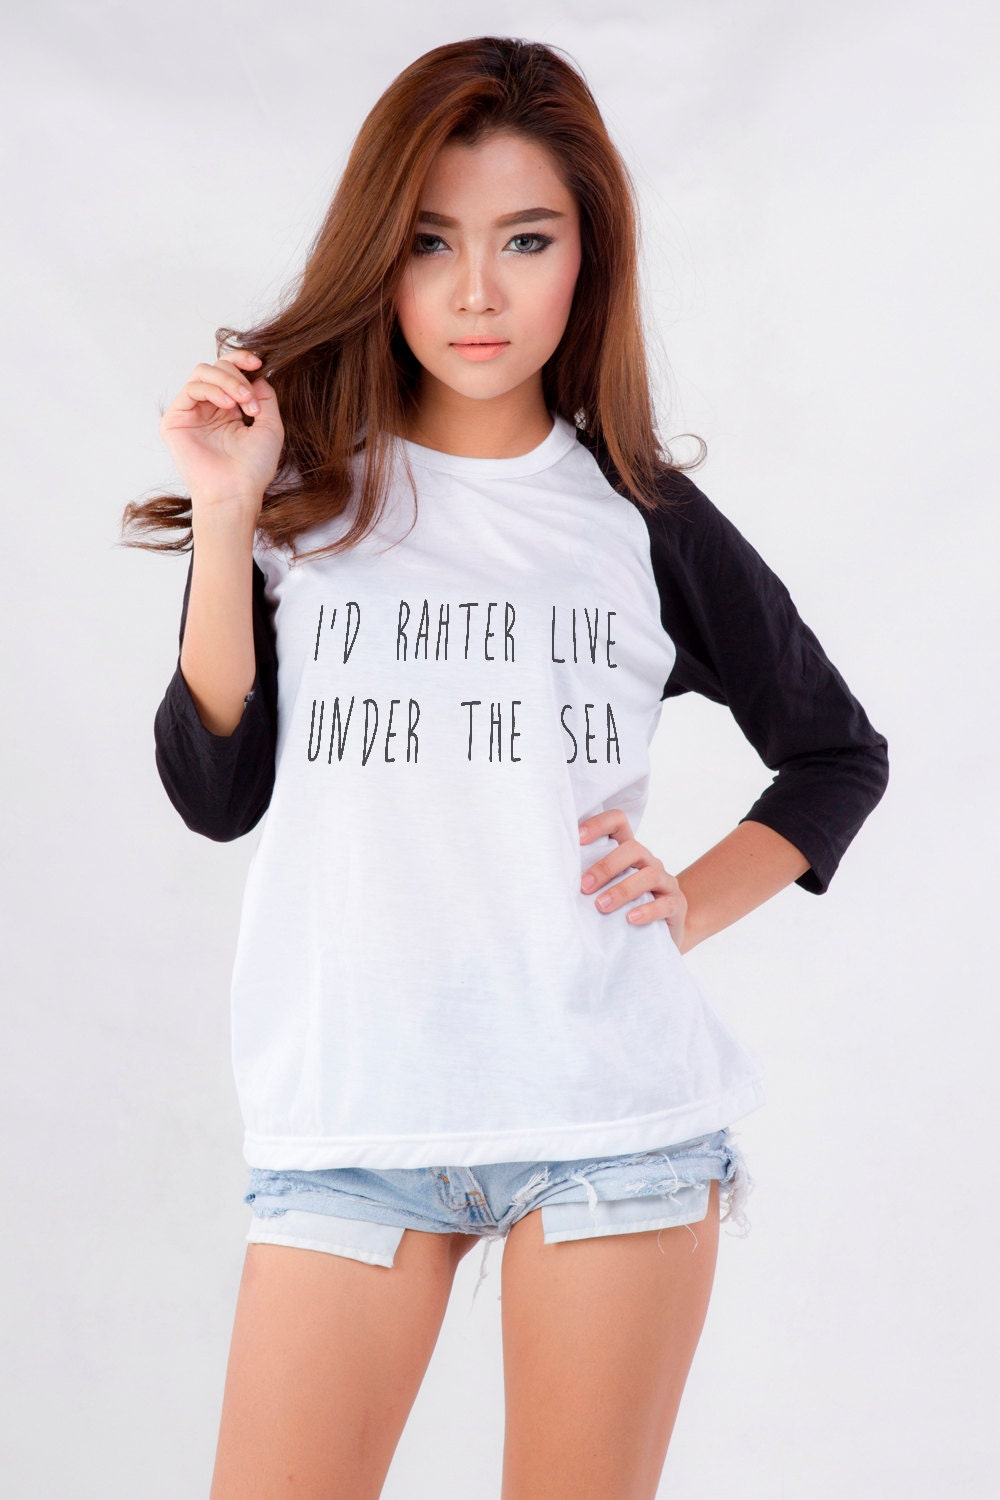 Funny graphic tees for teens